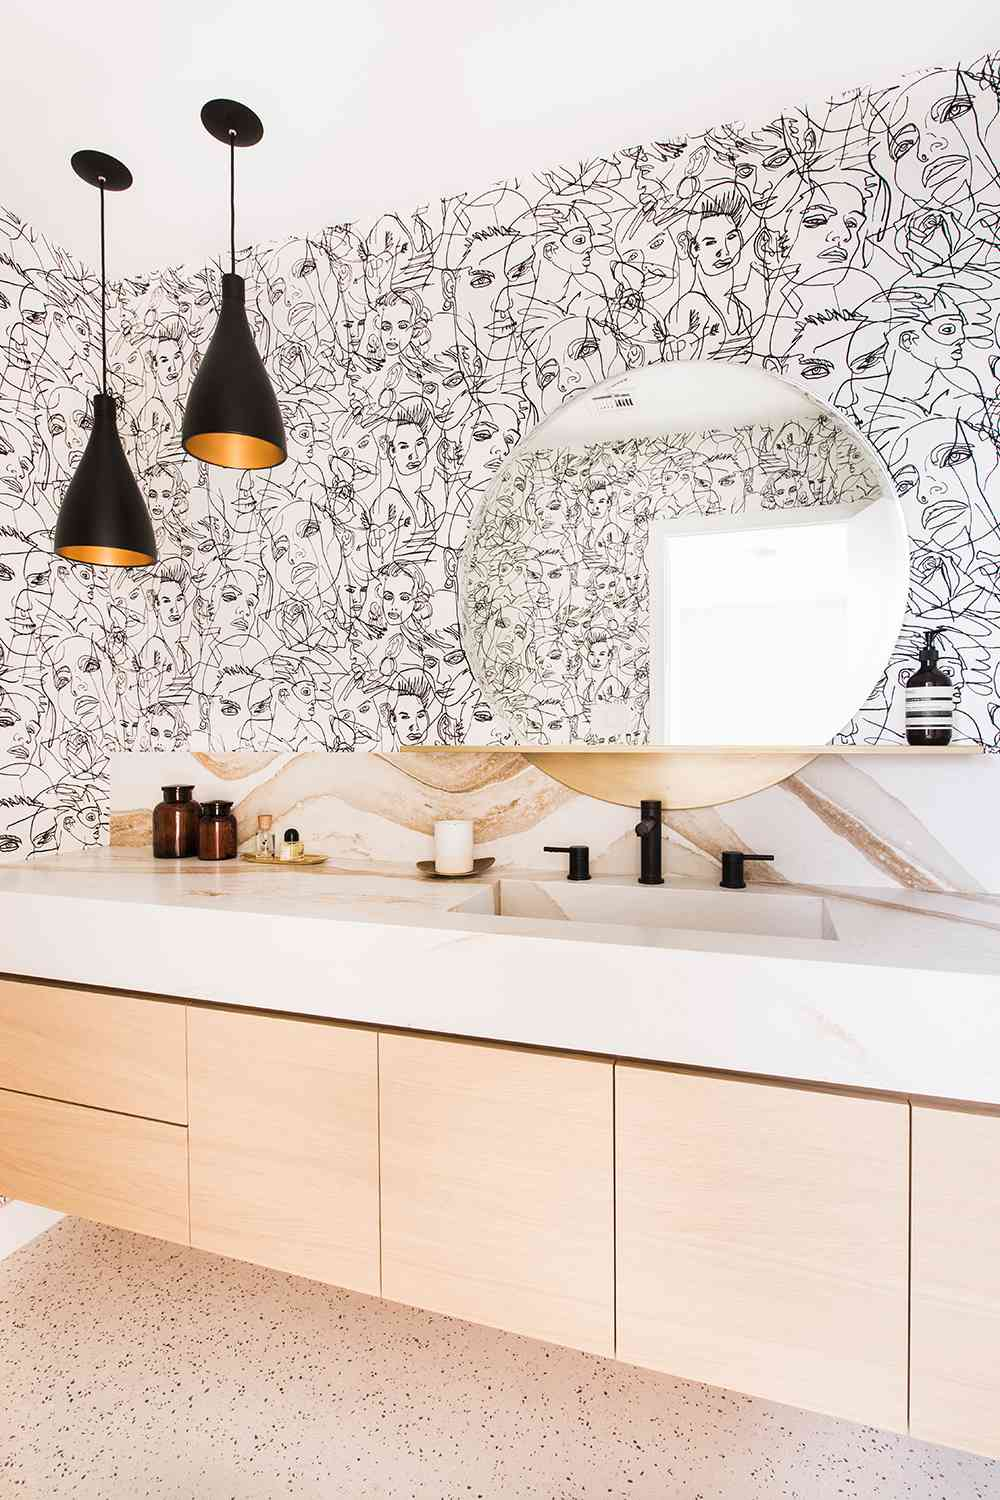 bathroom counter with hanging pendant lights